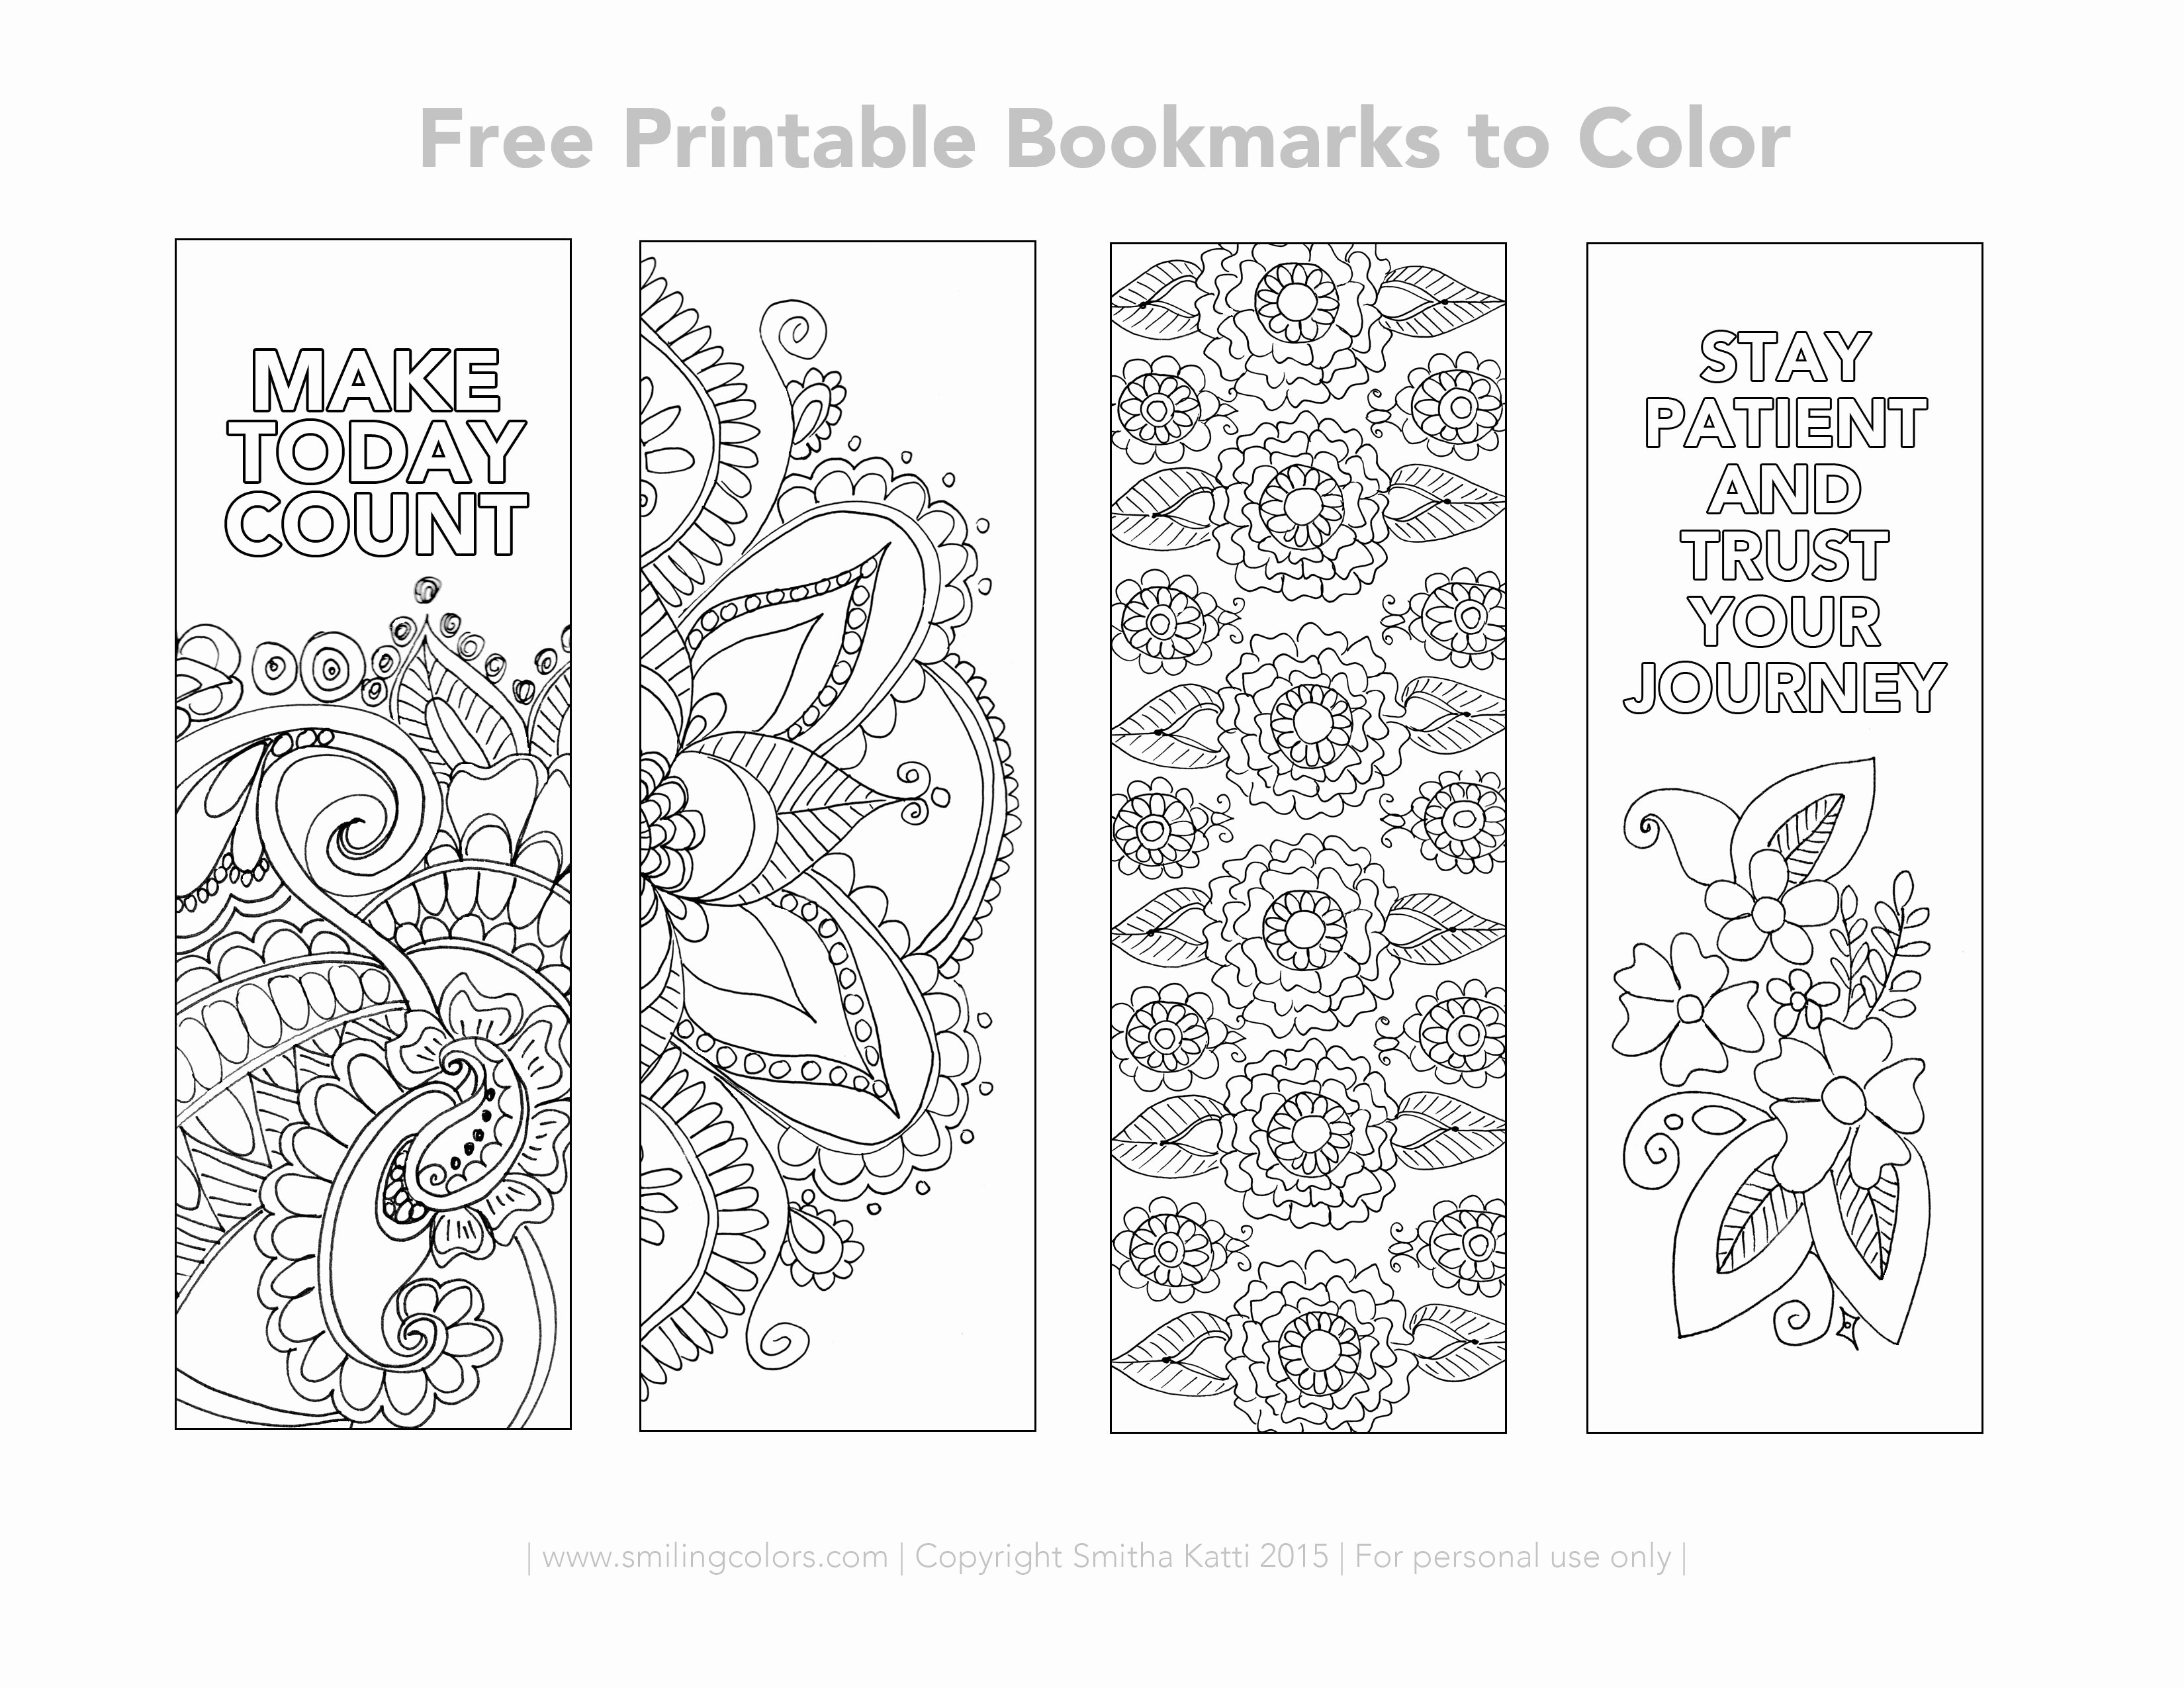 Free Printable Inspirational Bookmarks New Free Printable Bookmarks to Color